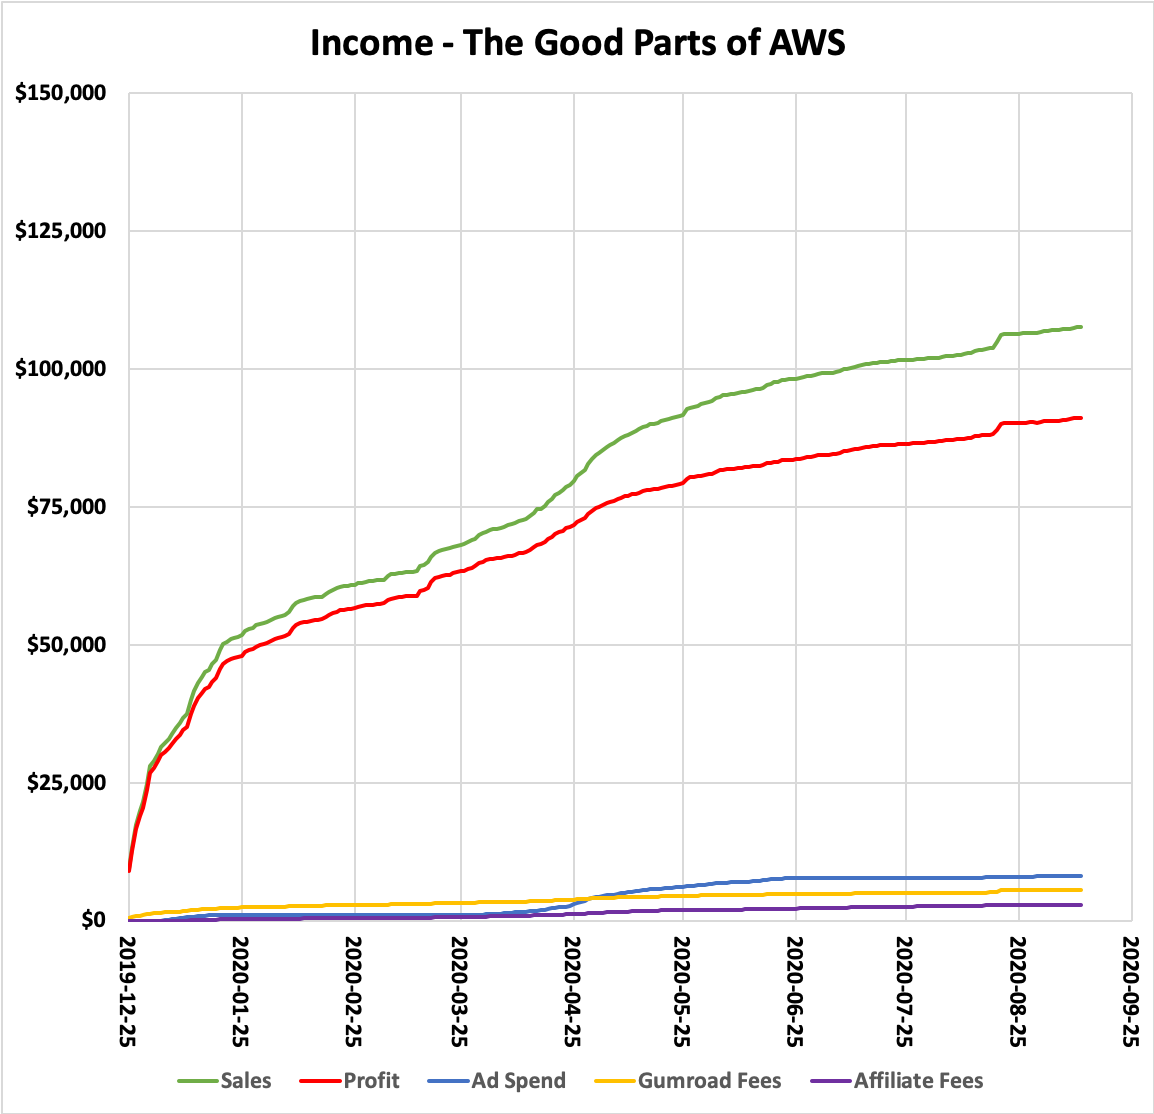 Income - The Good Parts of AWS